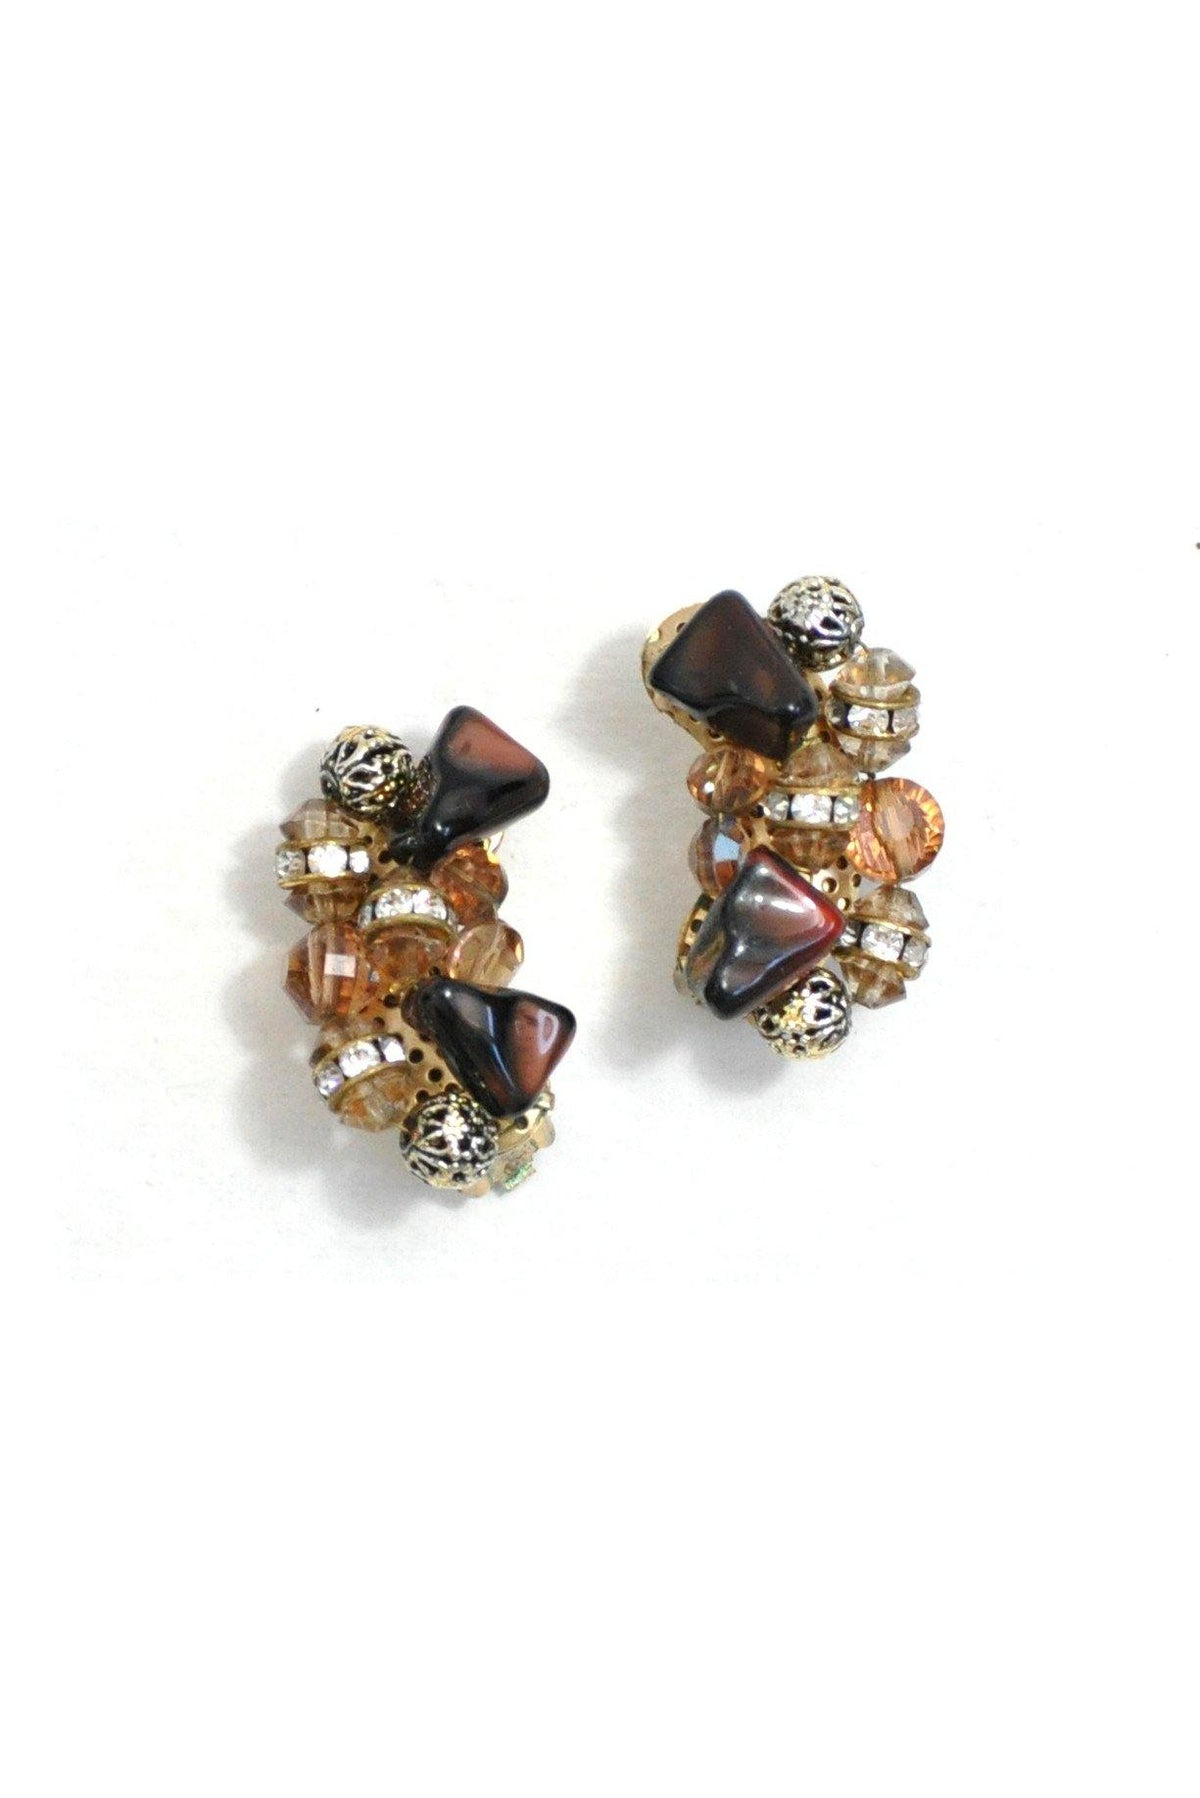 60's Vintage Beaded Crawler Clip-On Earrings